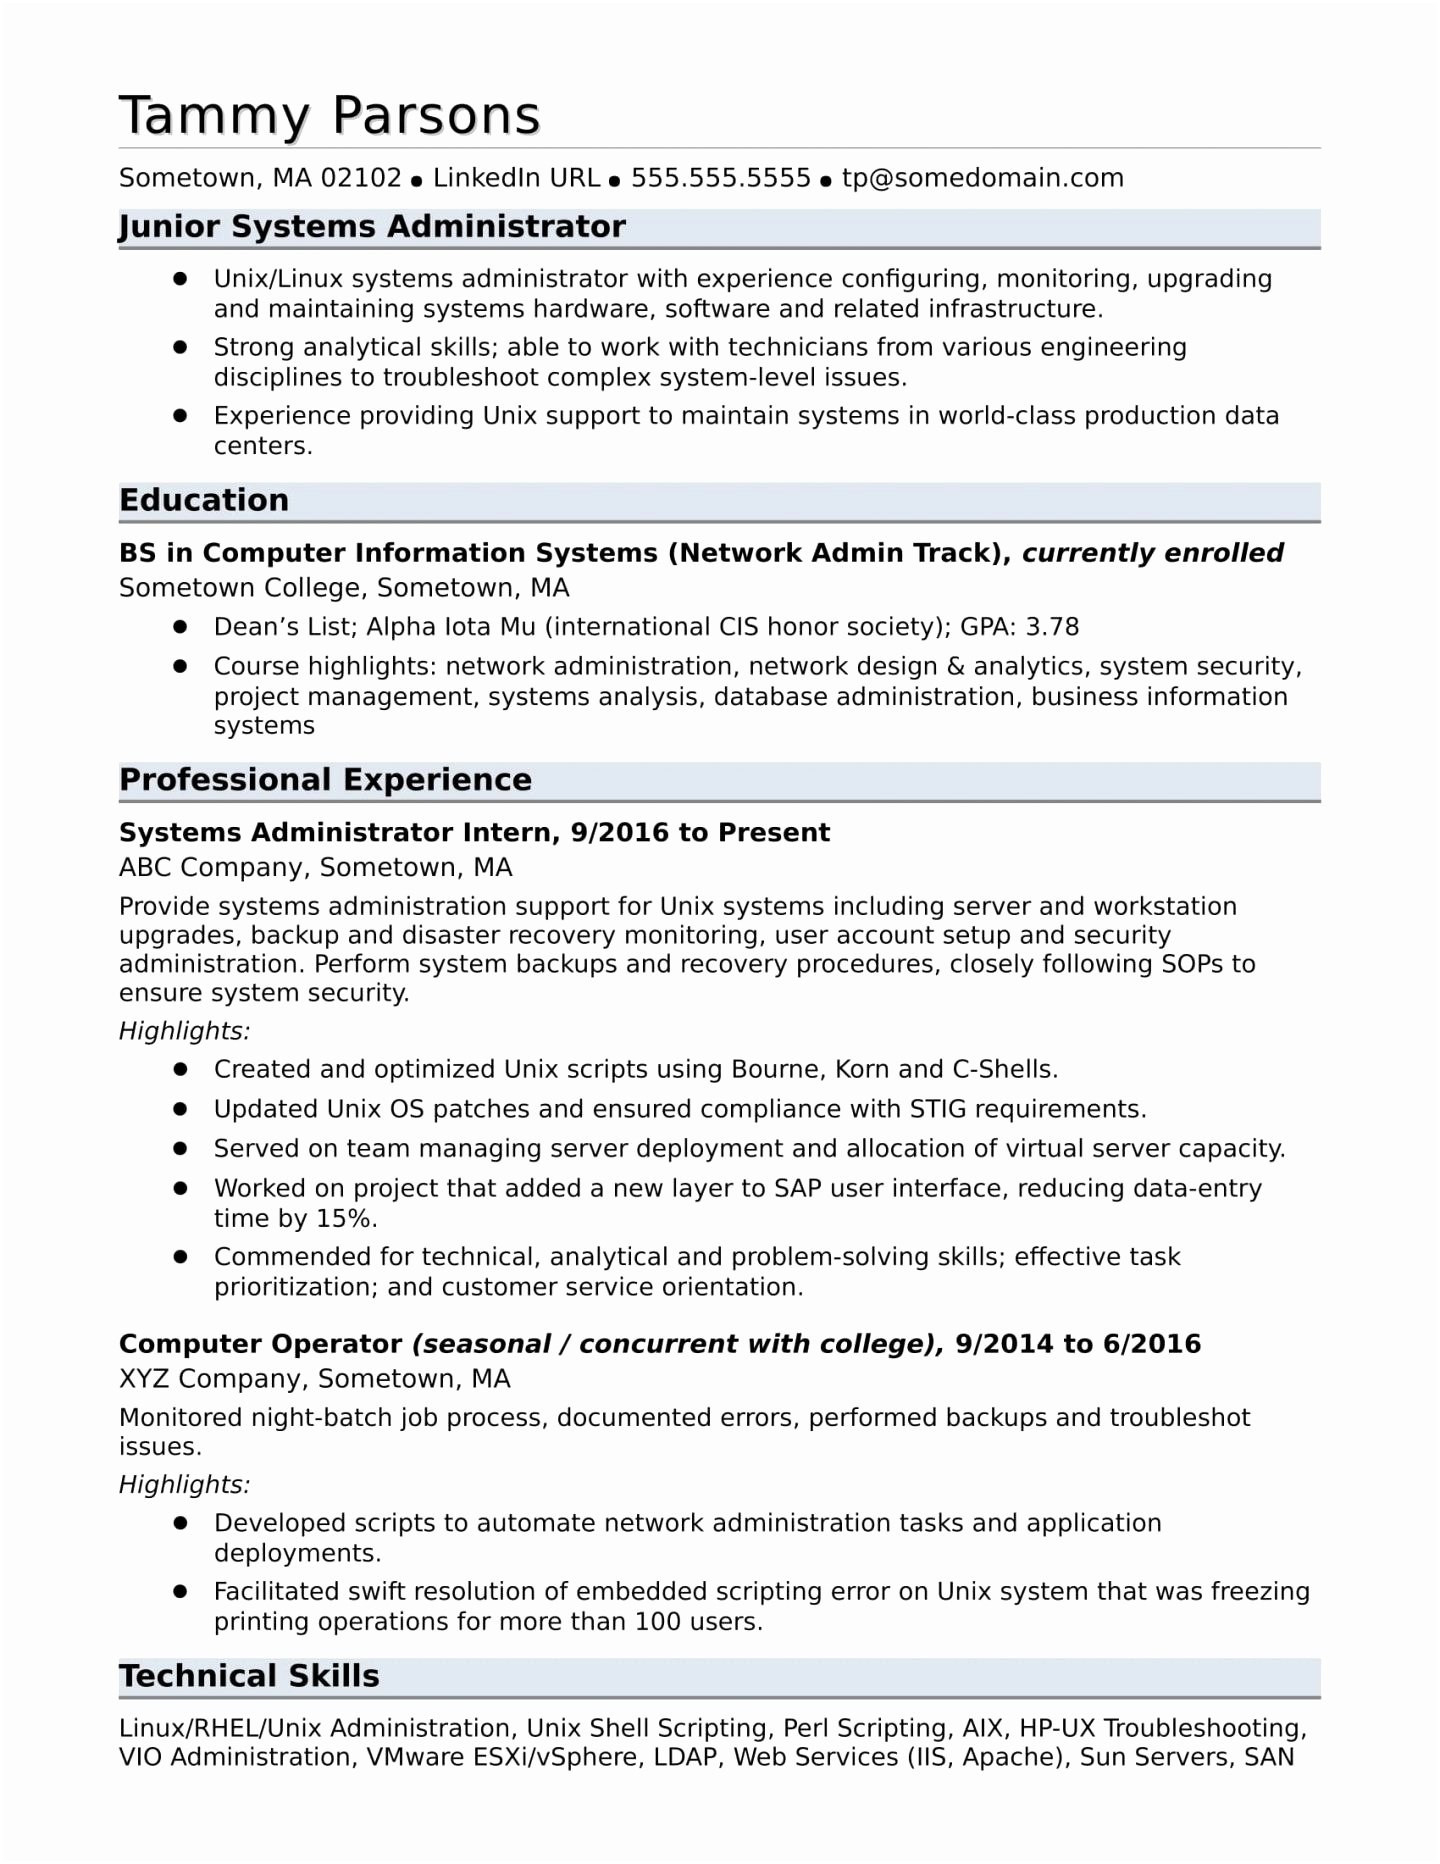 Applicant Tracking System Resume - Junior Web Developer Resume Utd Resume Template Unique Fishing